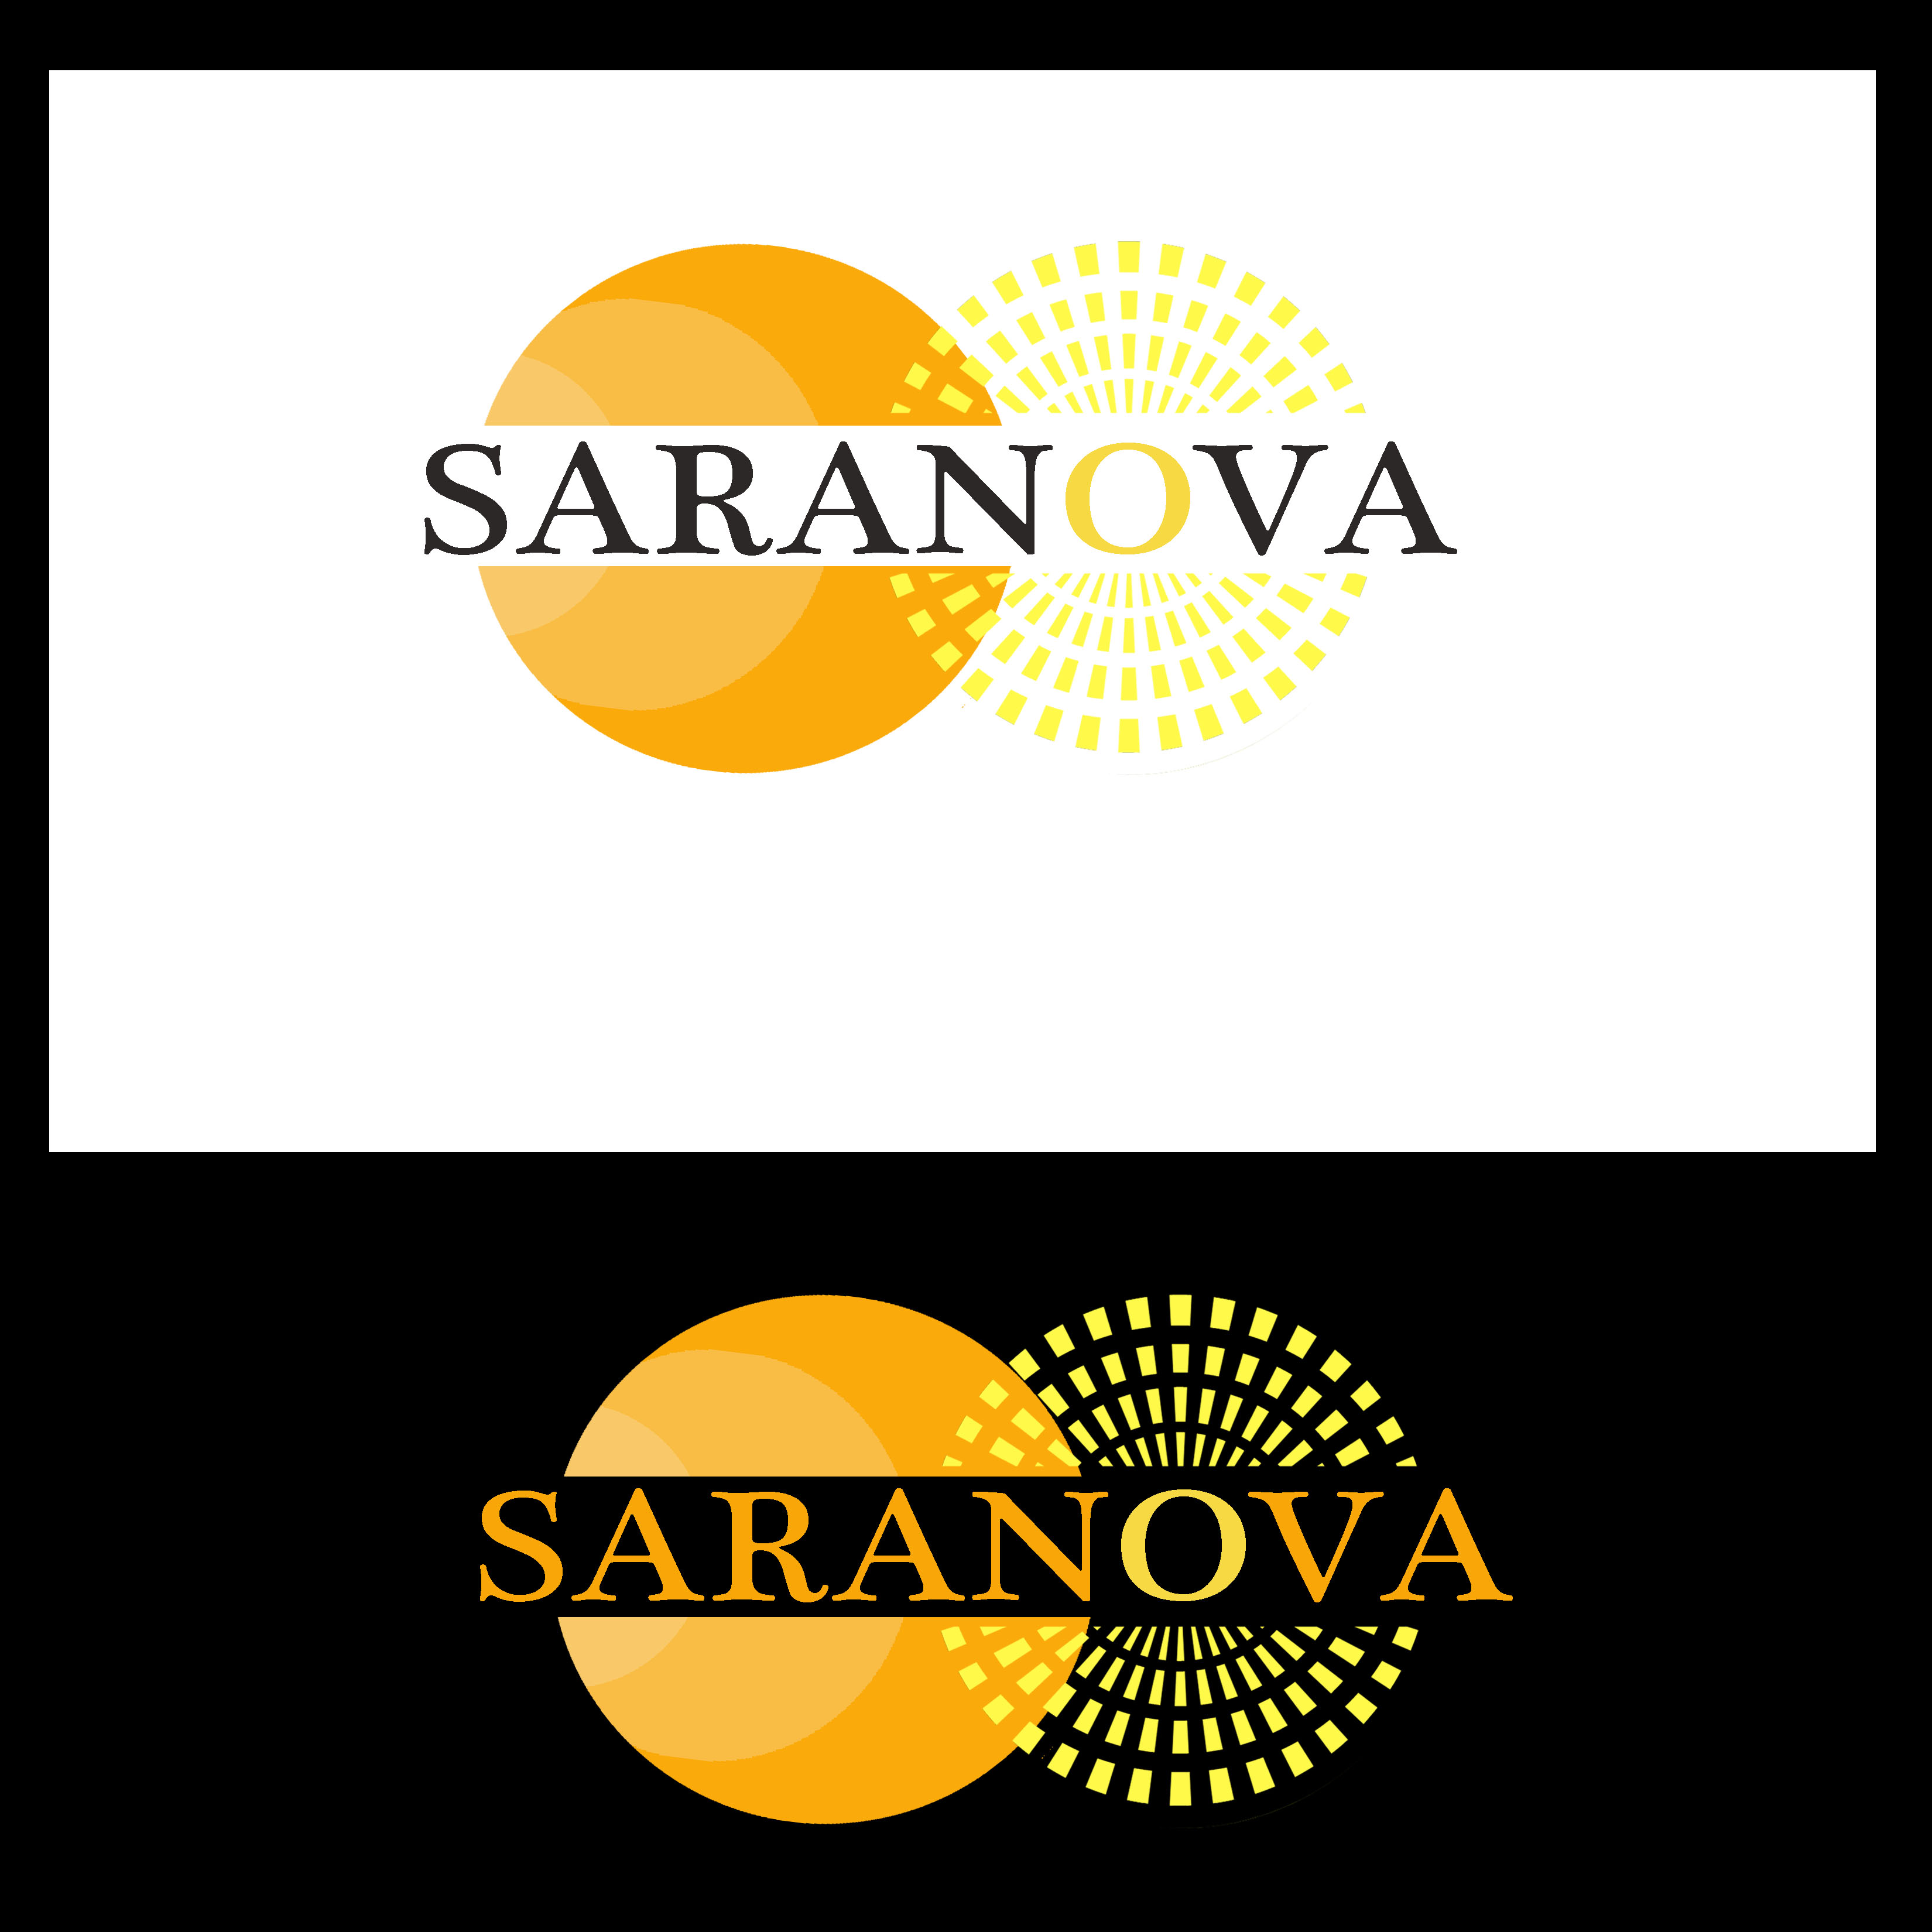 Logo Design by Allan Esclamado - Entry No. 63 in the Logo Design Contest Artistic Logo Design for Saranova.